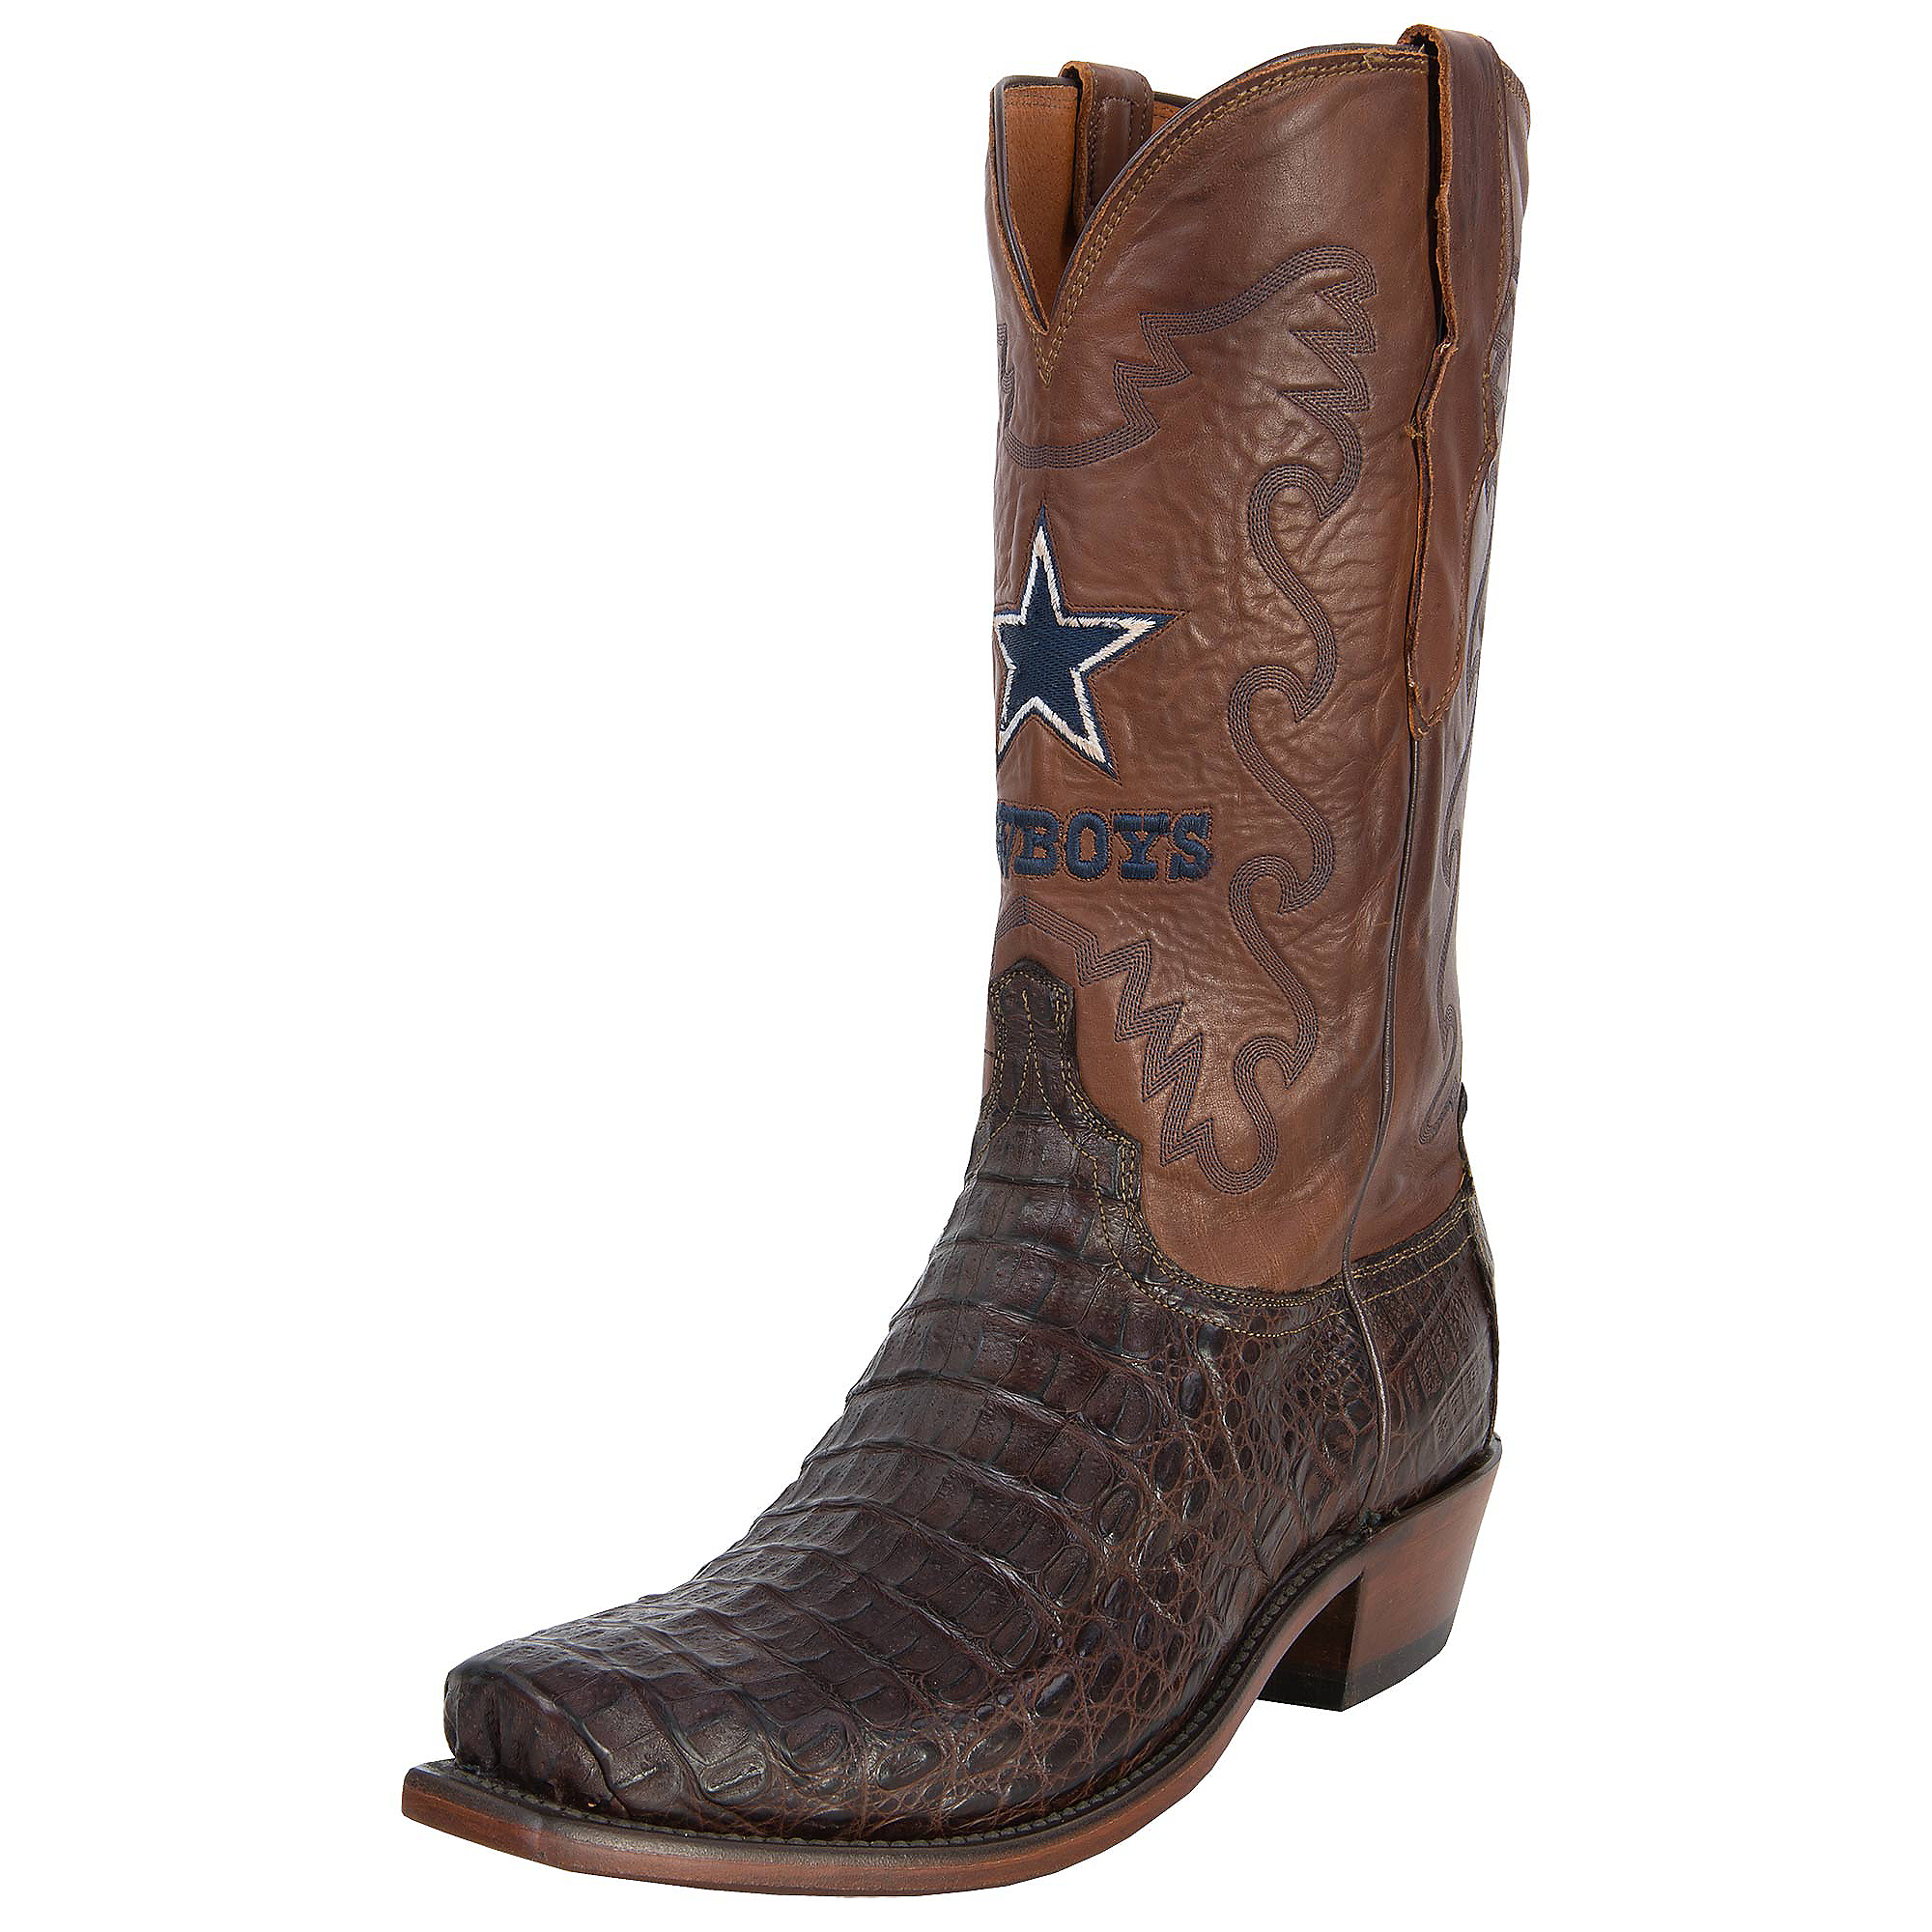 Dallas Cowboys Lucchese Mens Burn Ranch Boot - Width D